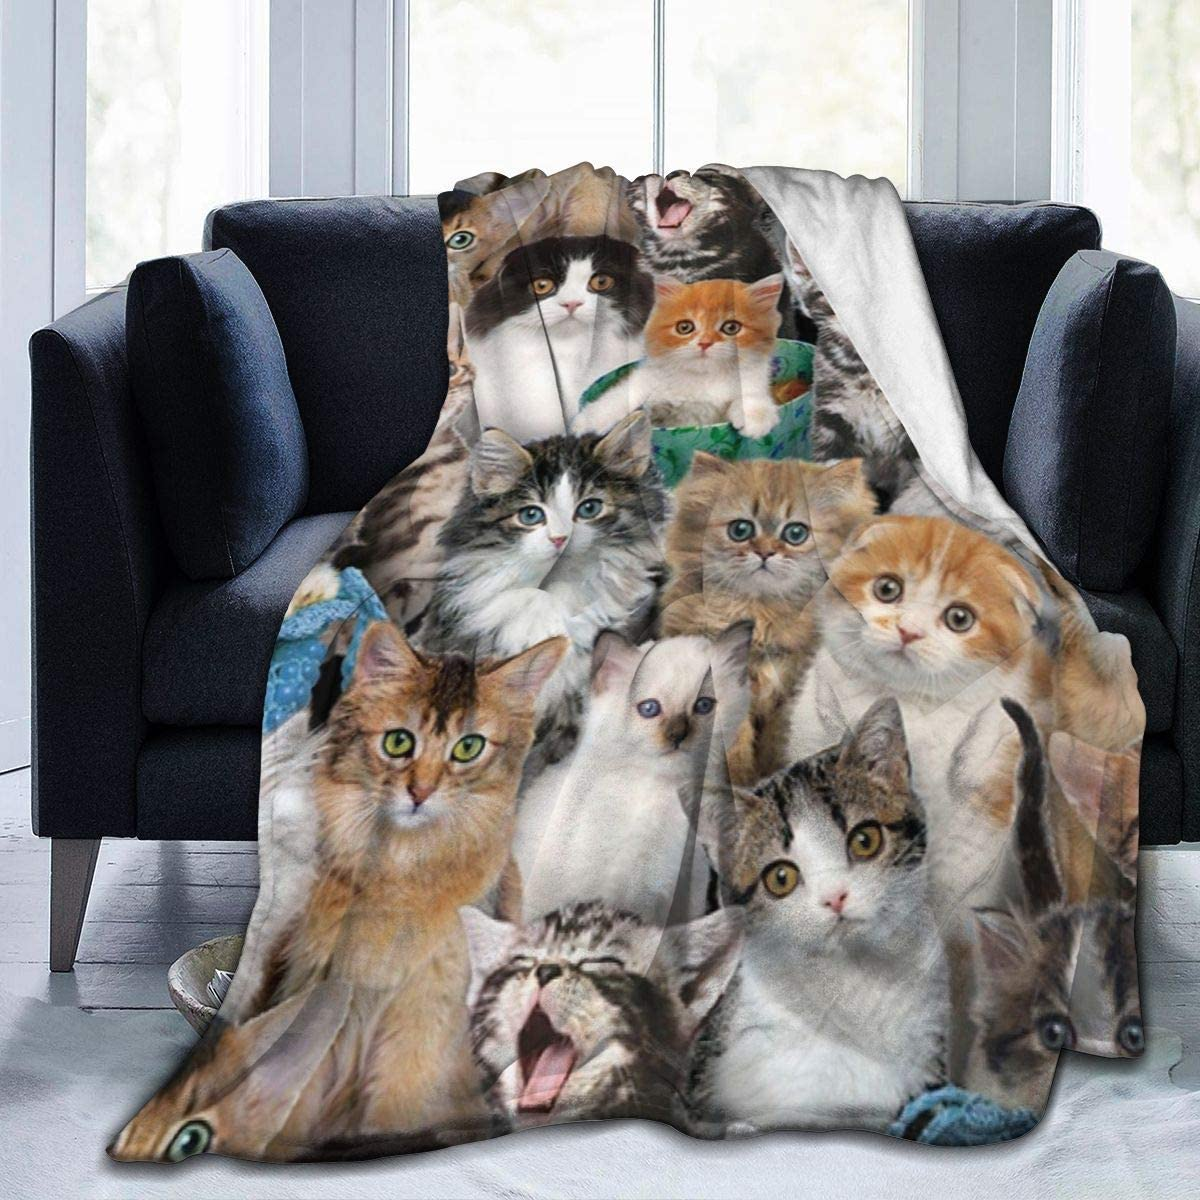 I love you here. Cute Cat 80x60 Inch Warm Fluffy Plush Blanket for Bed Couch Chair Living Room Fall Winter Spring Gift for Christmas Easter Valentine's Day Thanksgiving Halloween